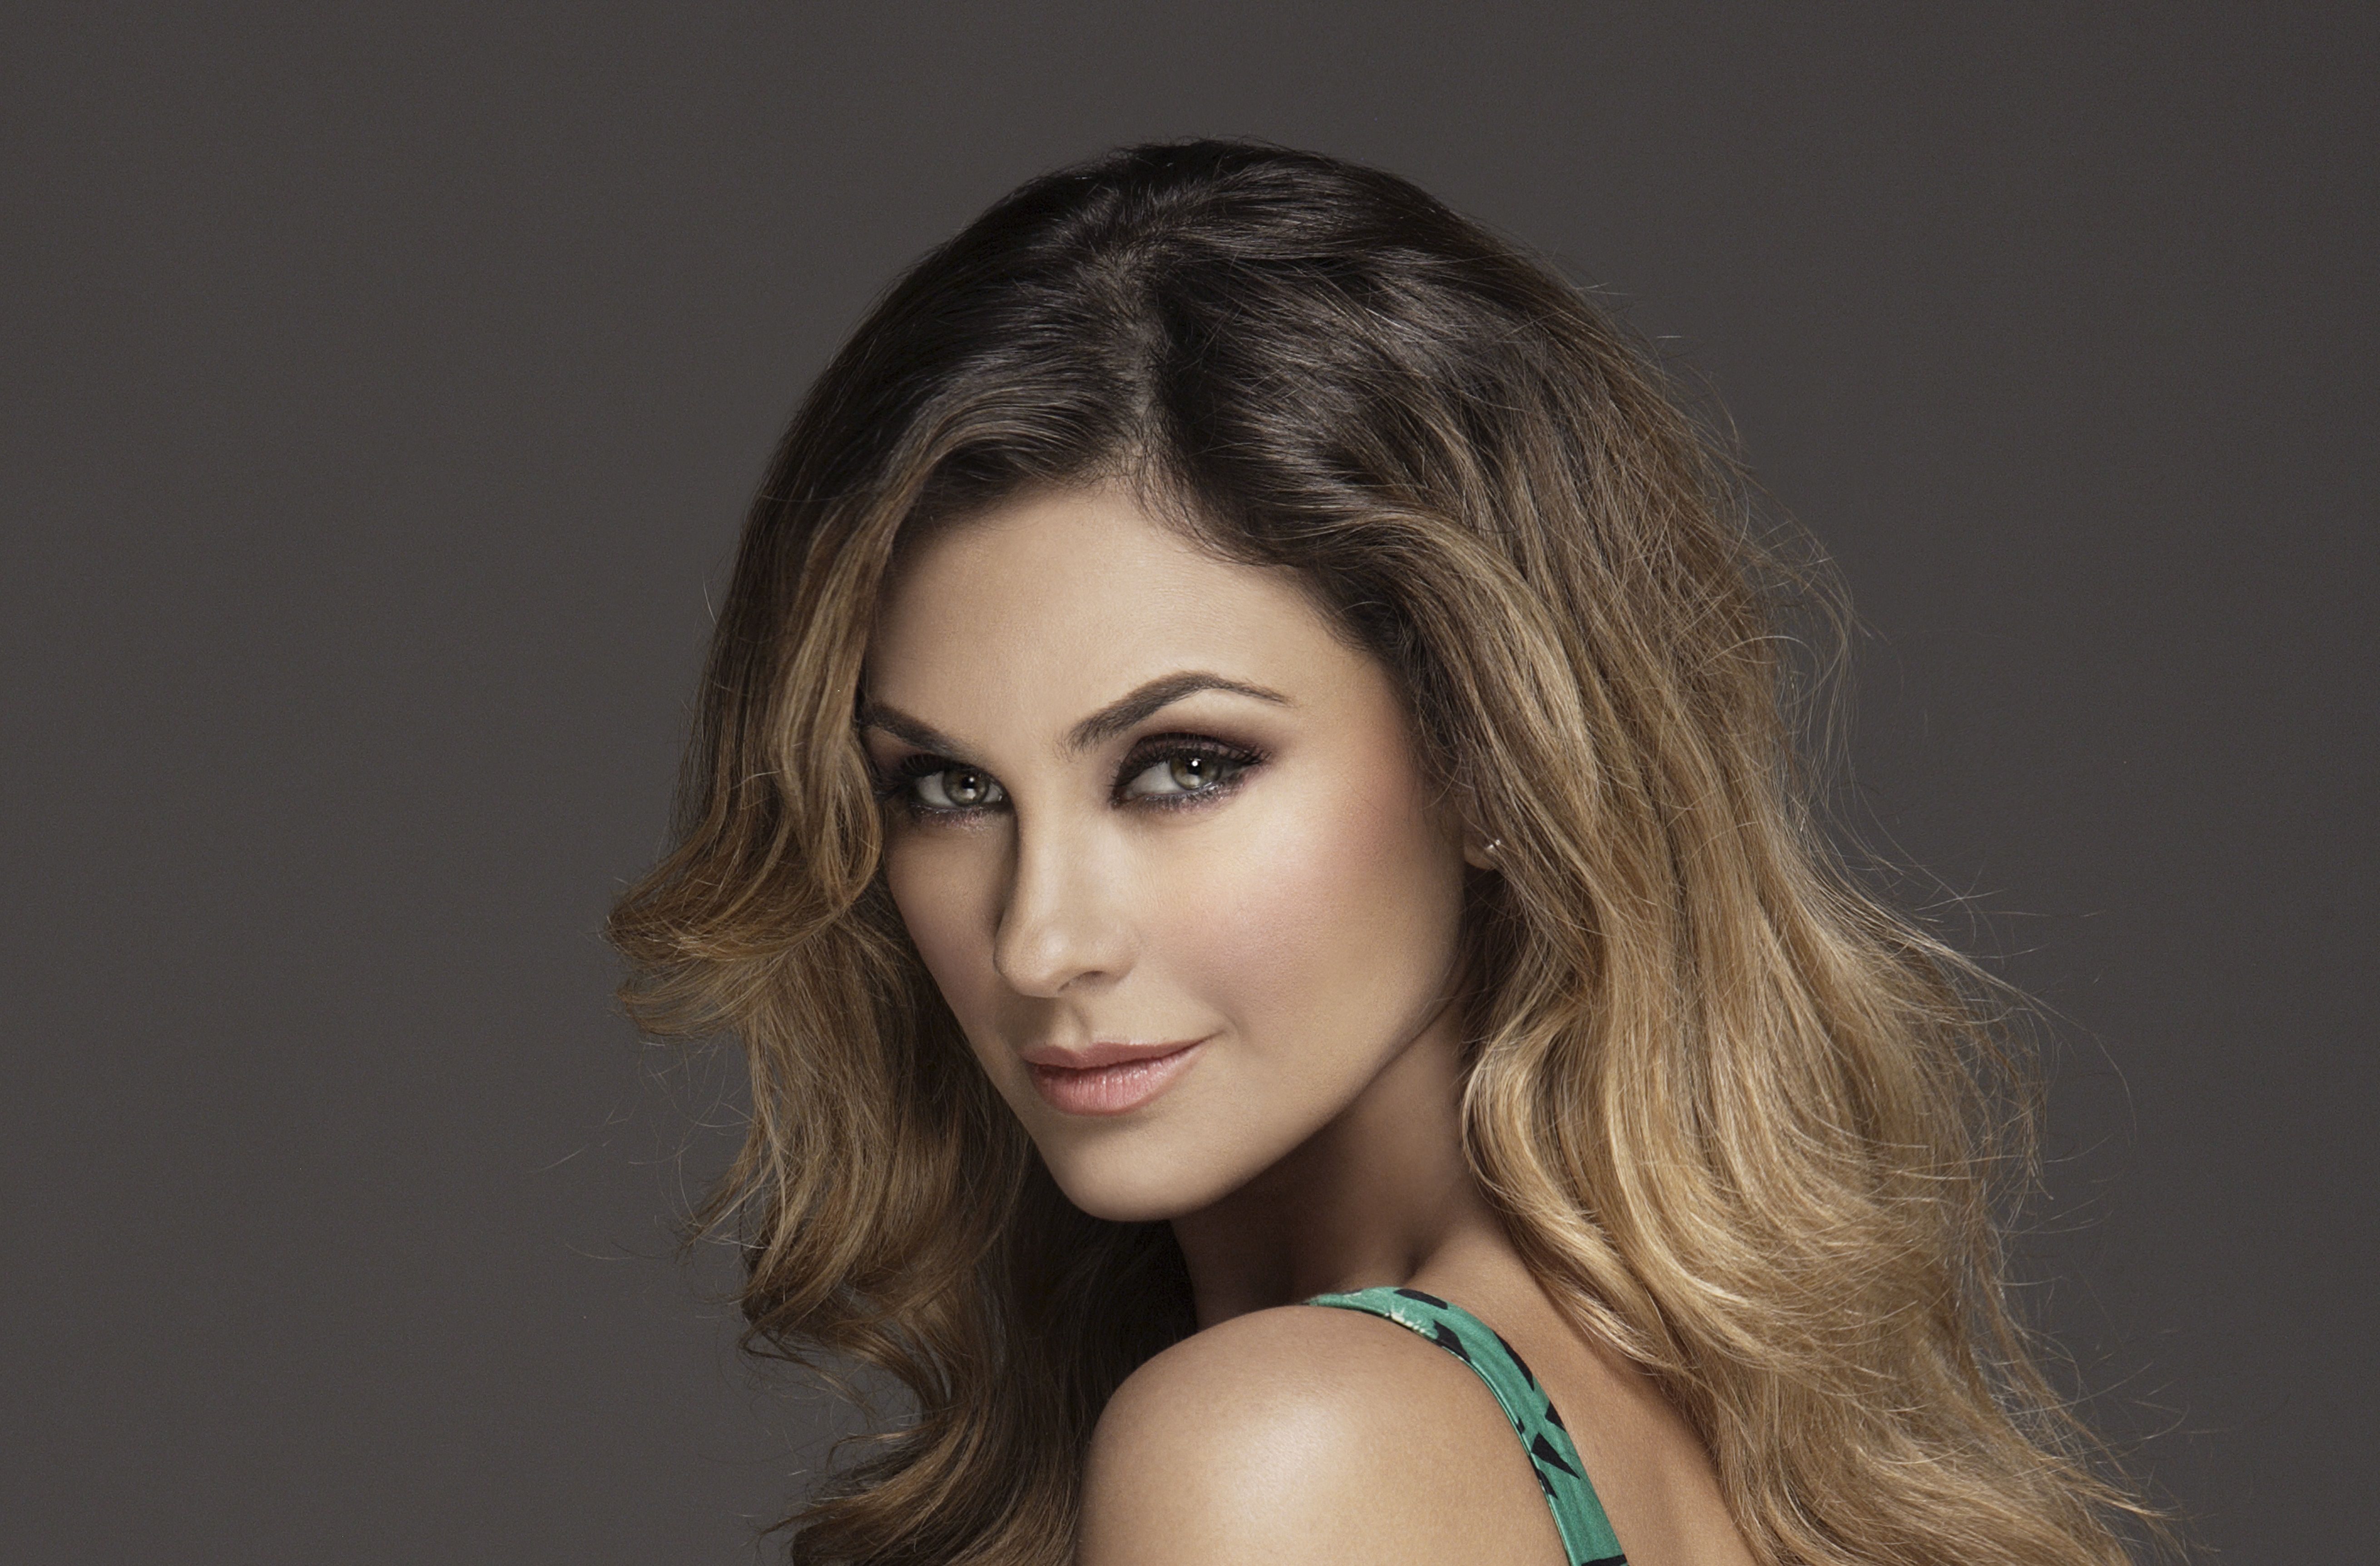 aracely arambula hot   windows mode